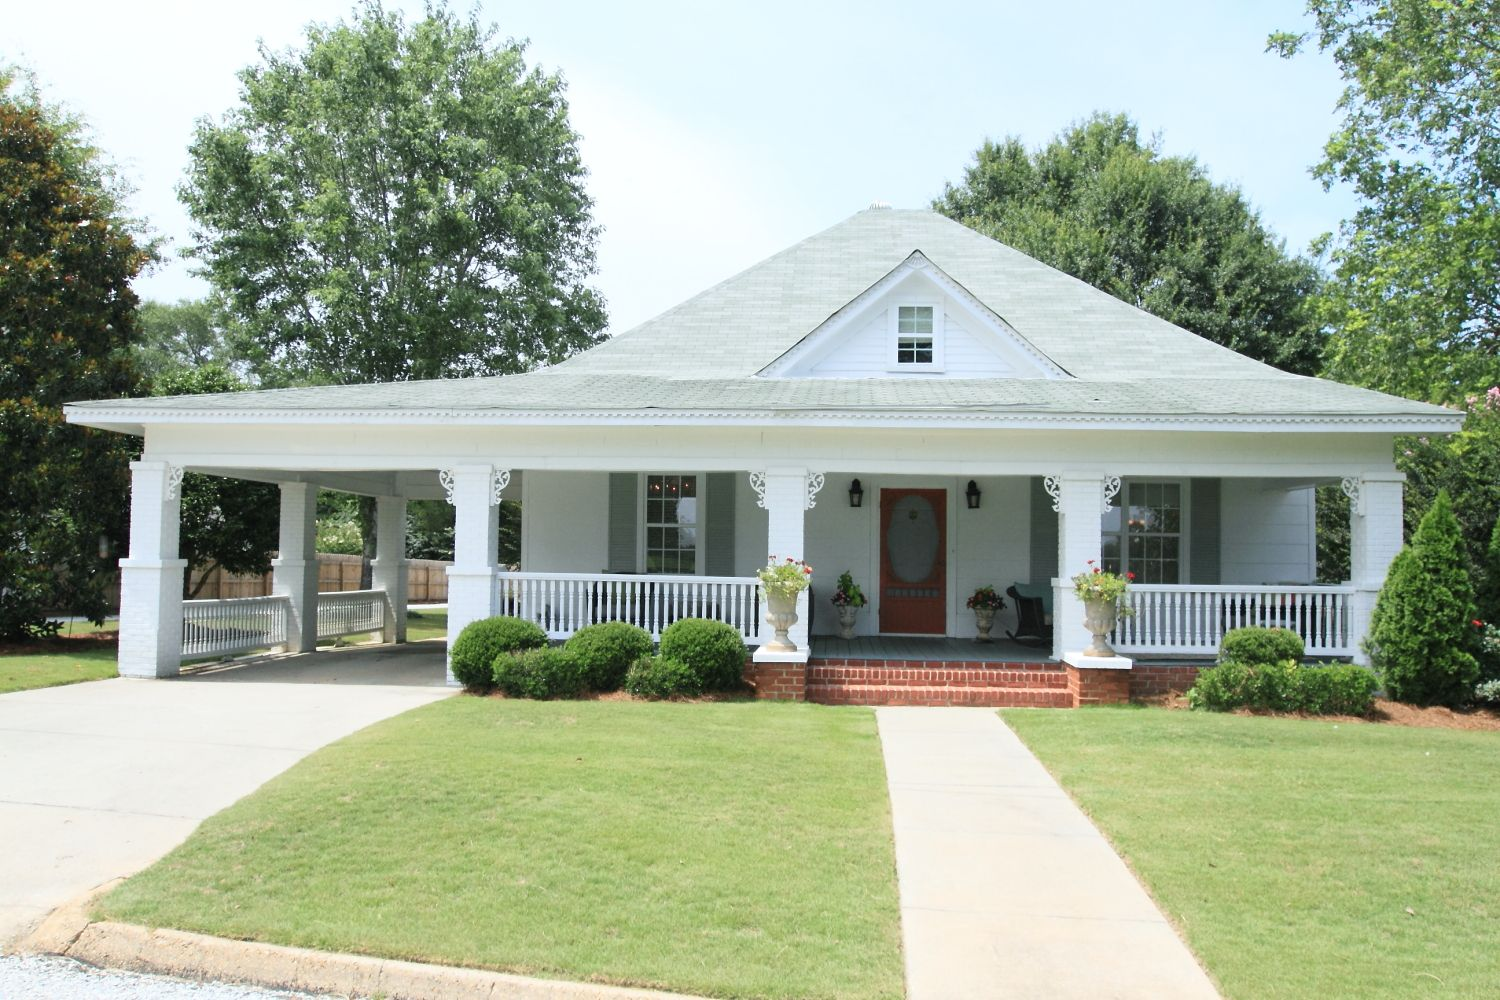 Add A Wrap Around Porch House Plans Farmhouse Plans House With Porch